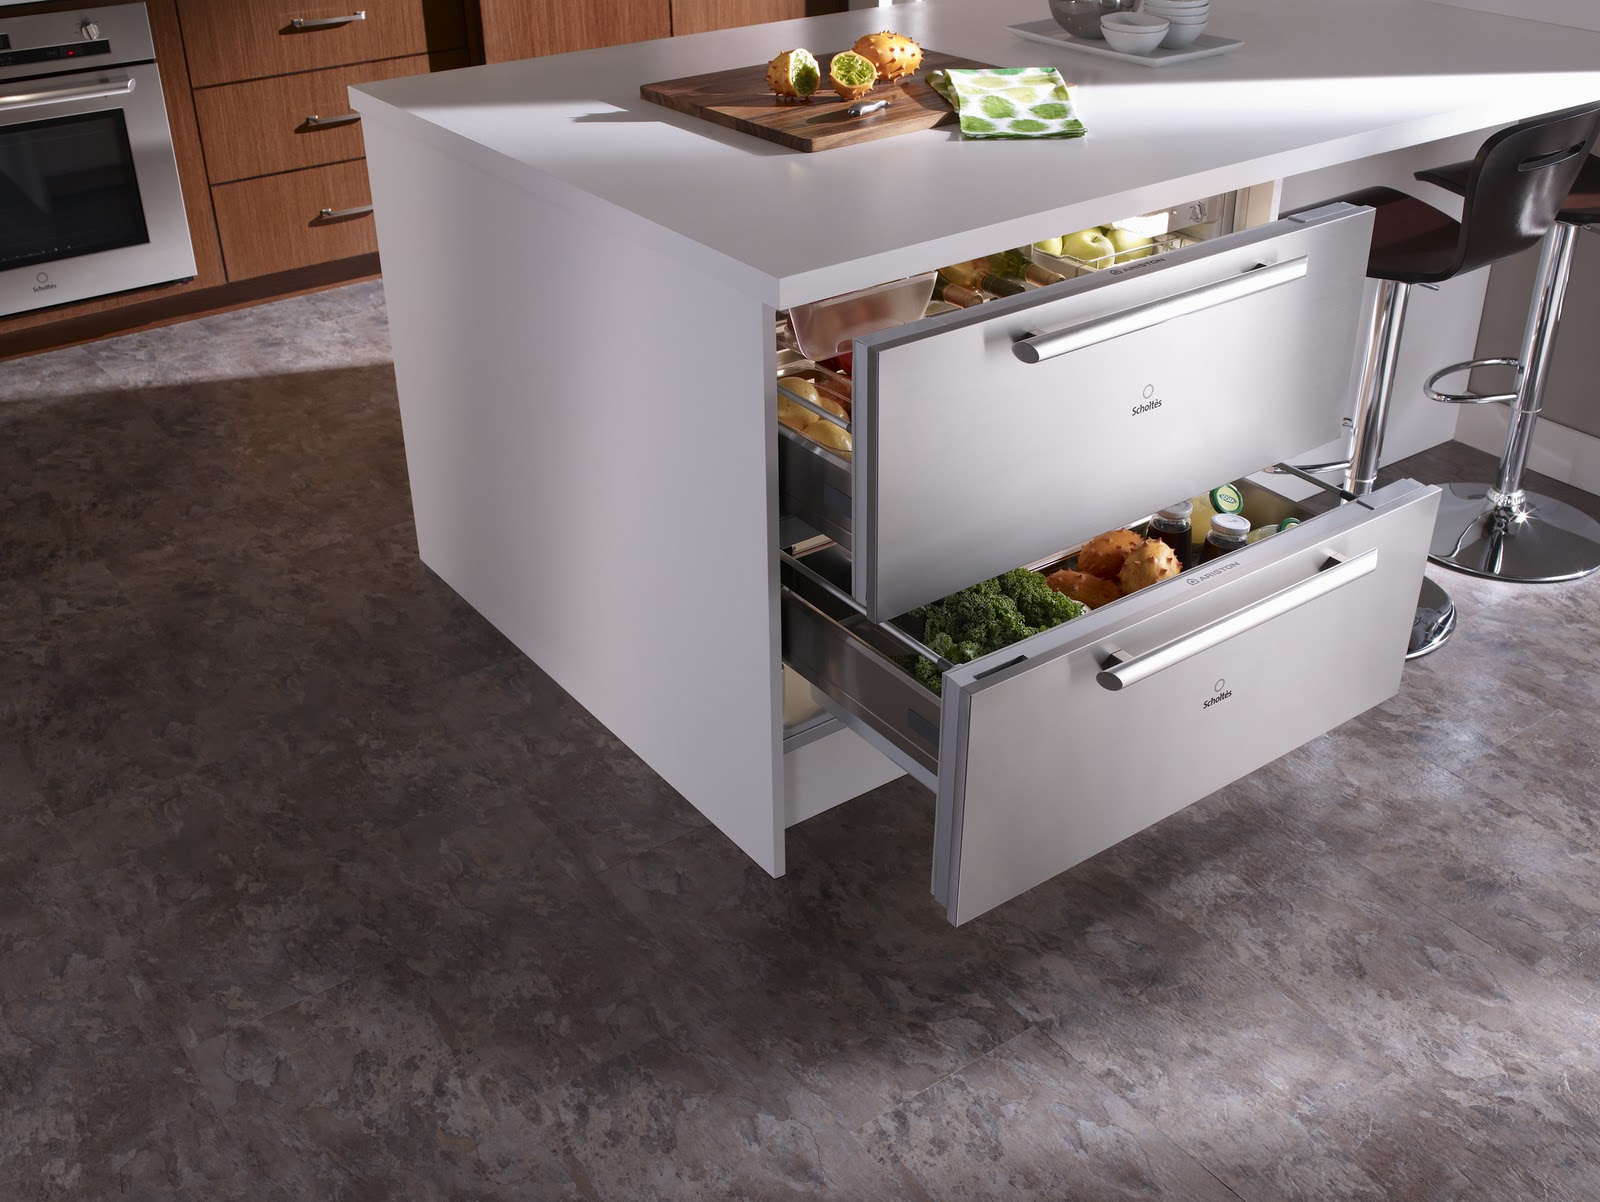 Kitchens with Refrigerator Drawers